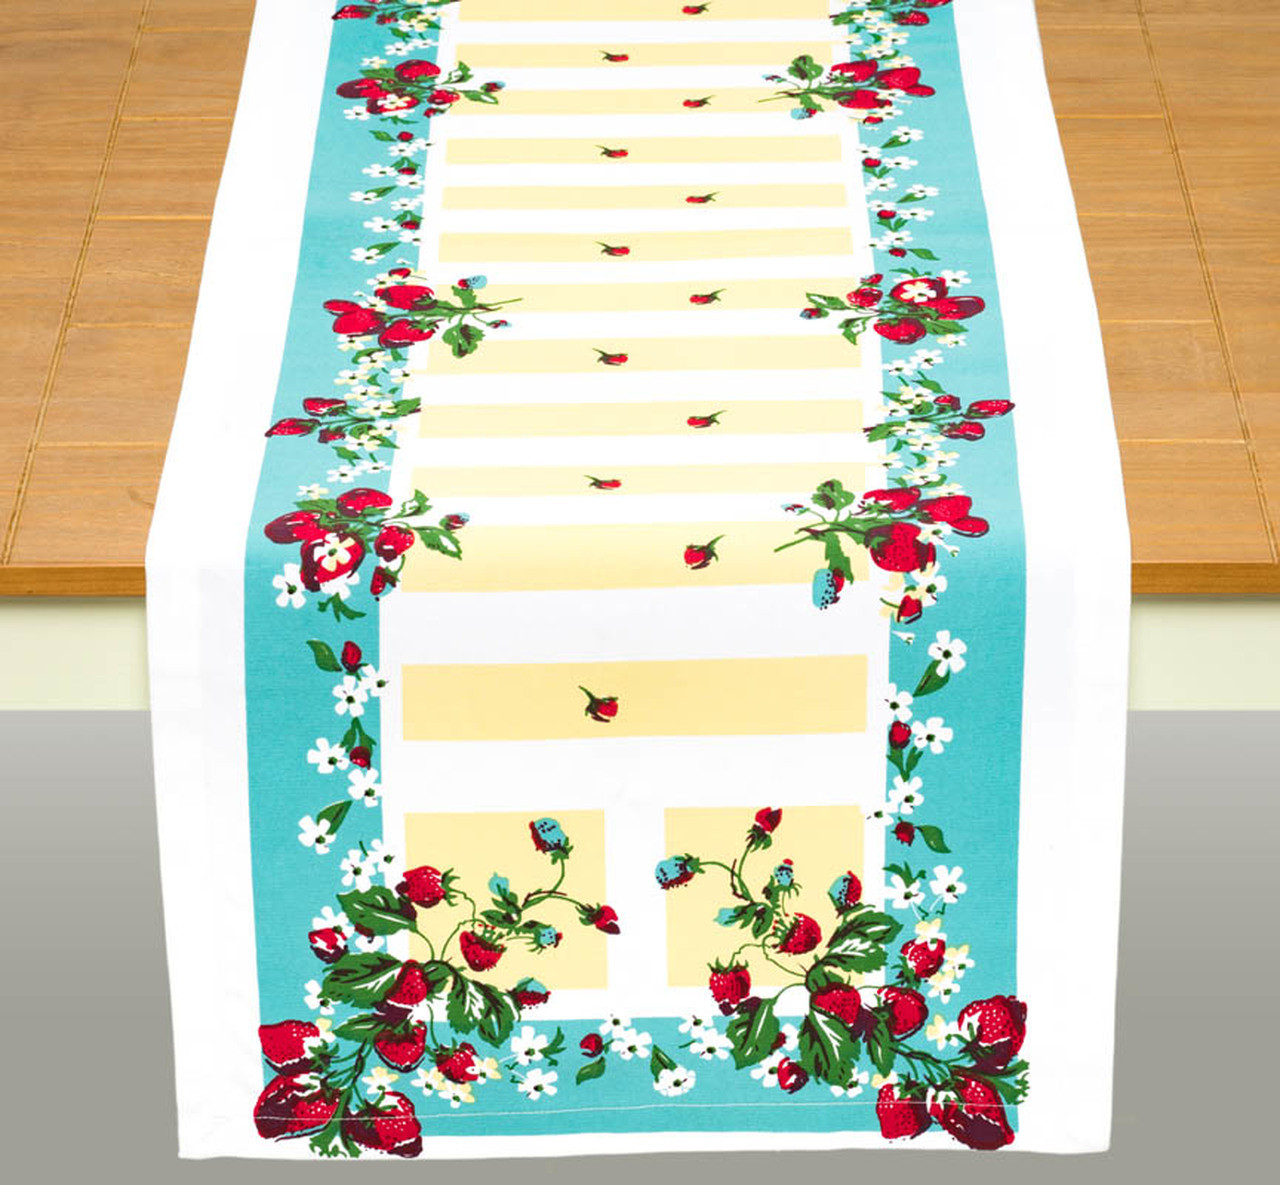 Vintage-Inspired Strawberry Lane Table Runner